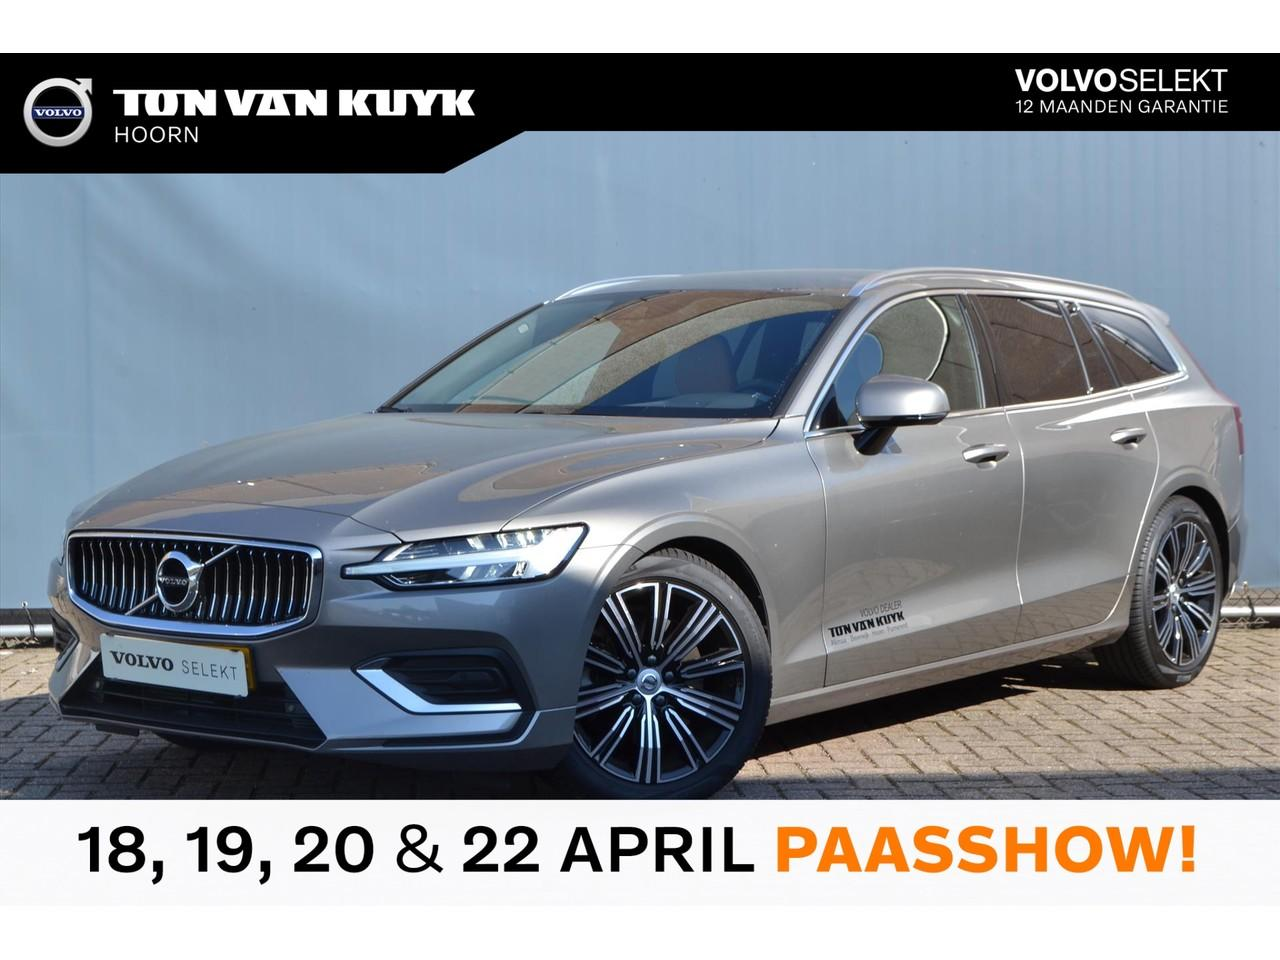 Volvo V60 New t5 250pk geartr inscription intellisafe assist